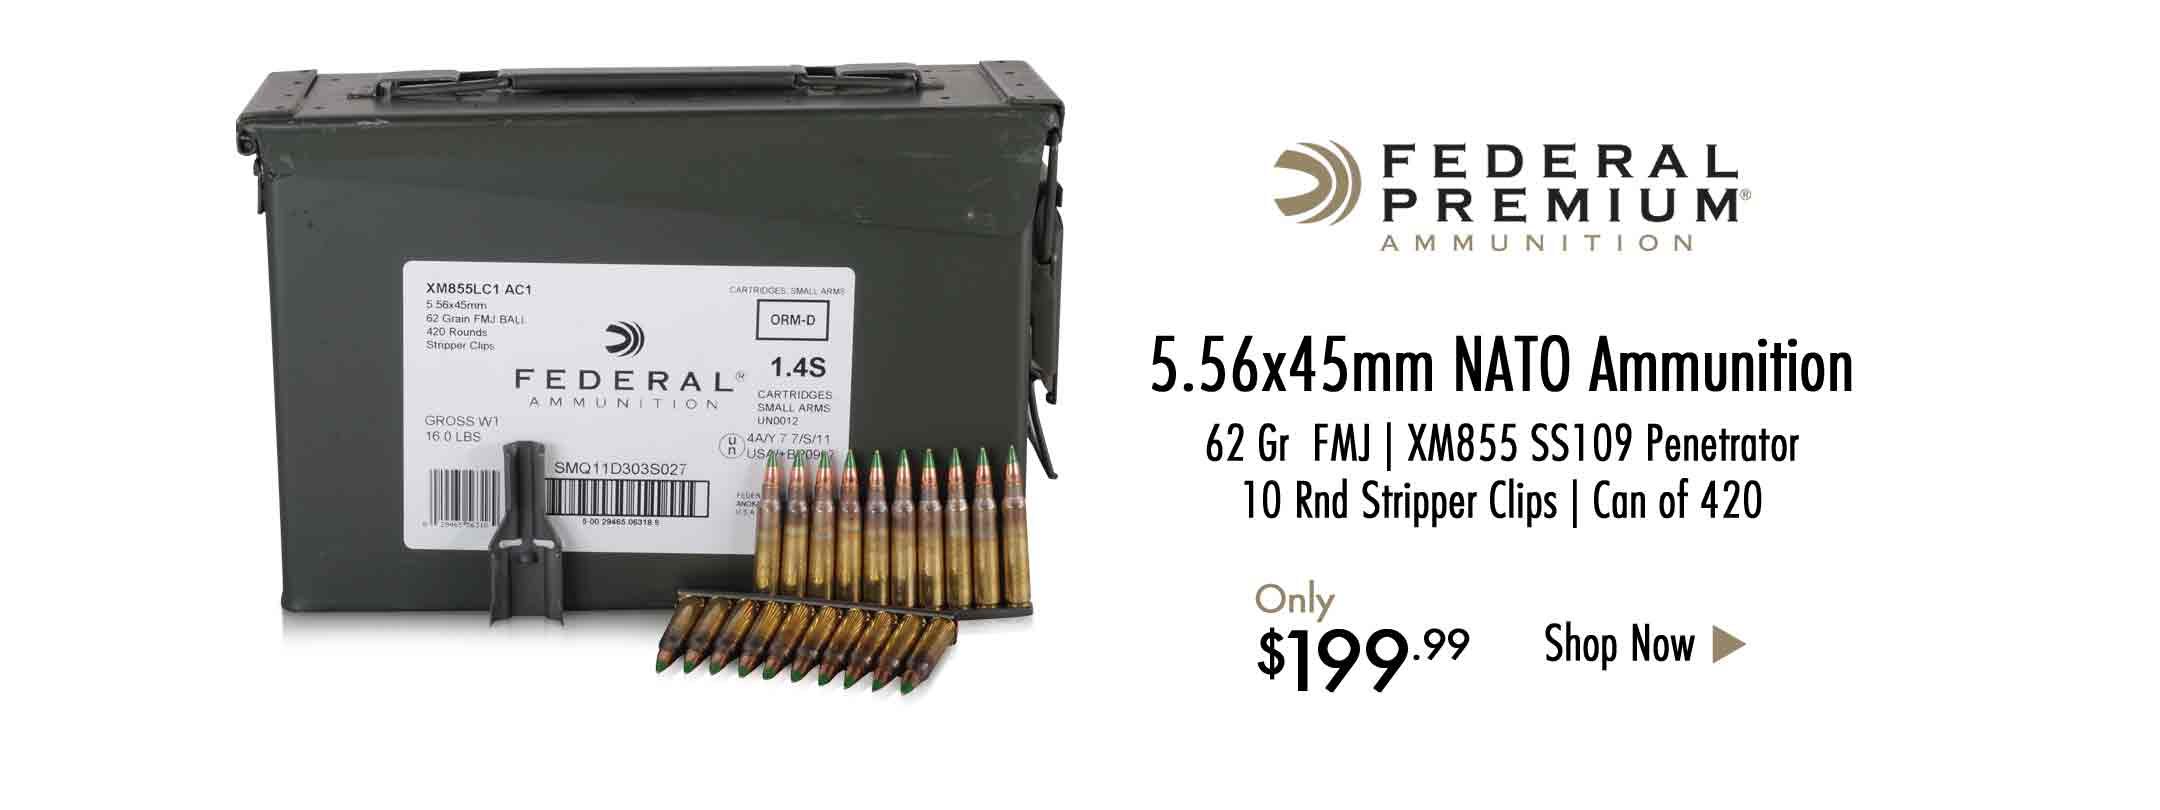 Federal 5.56x45mm NATO Ammo in Stripper Clips